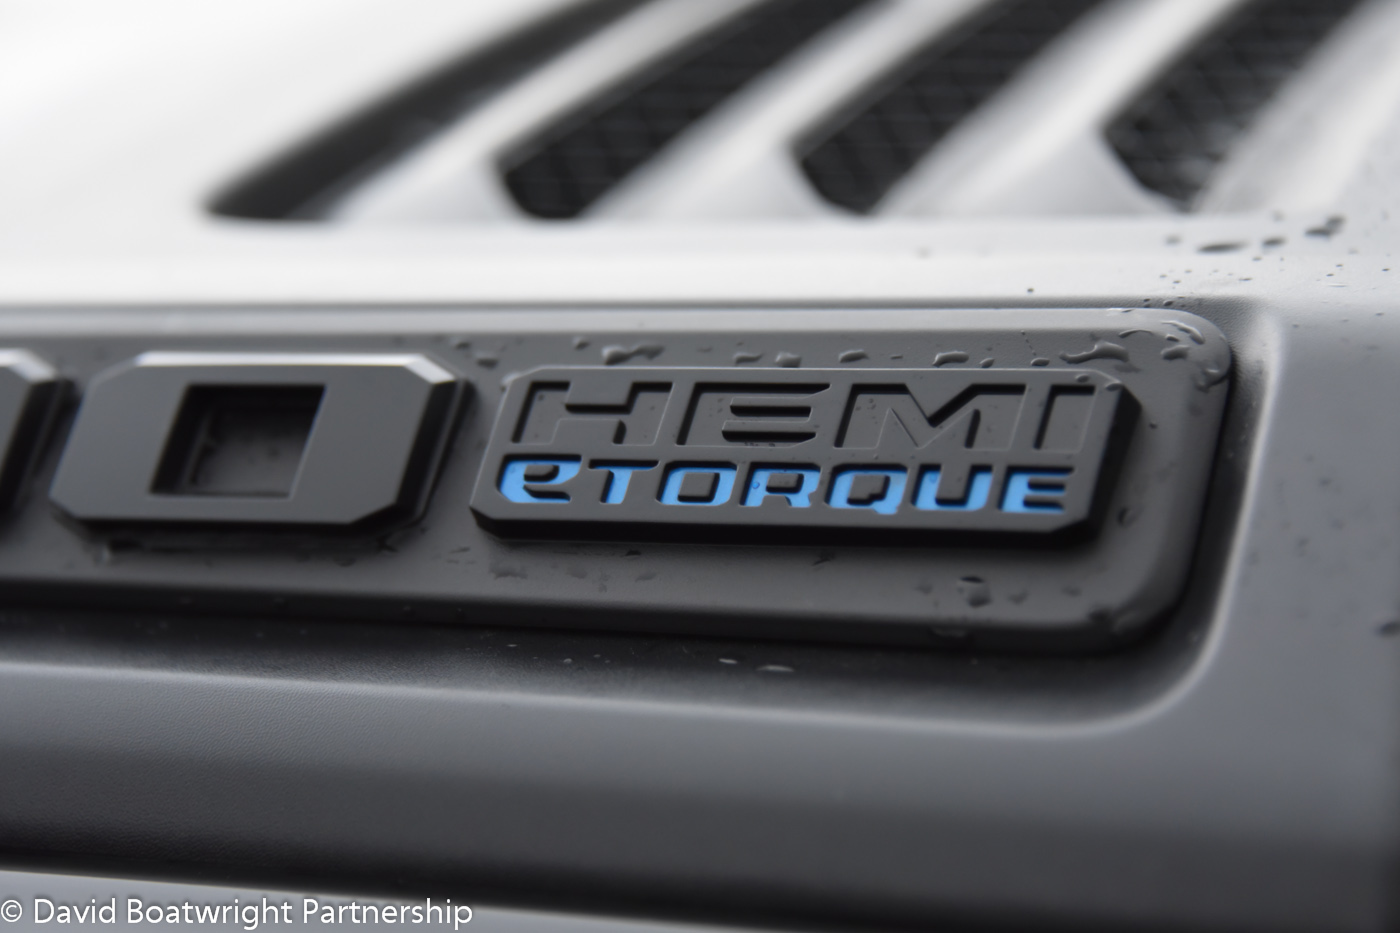 2021 Ram Limited e-Torque Night Edition